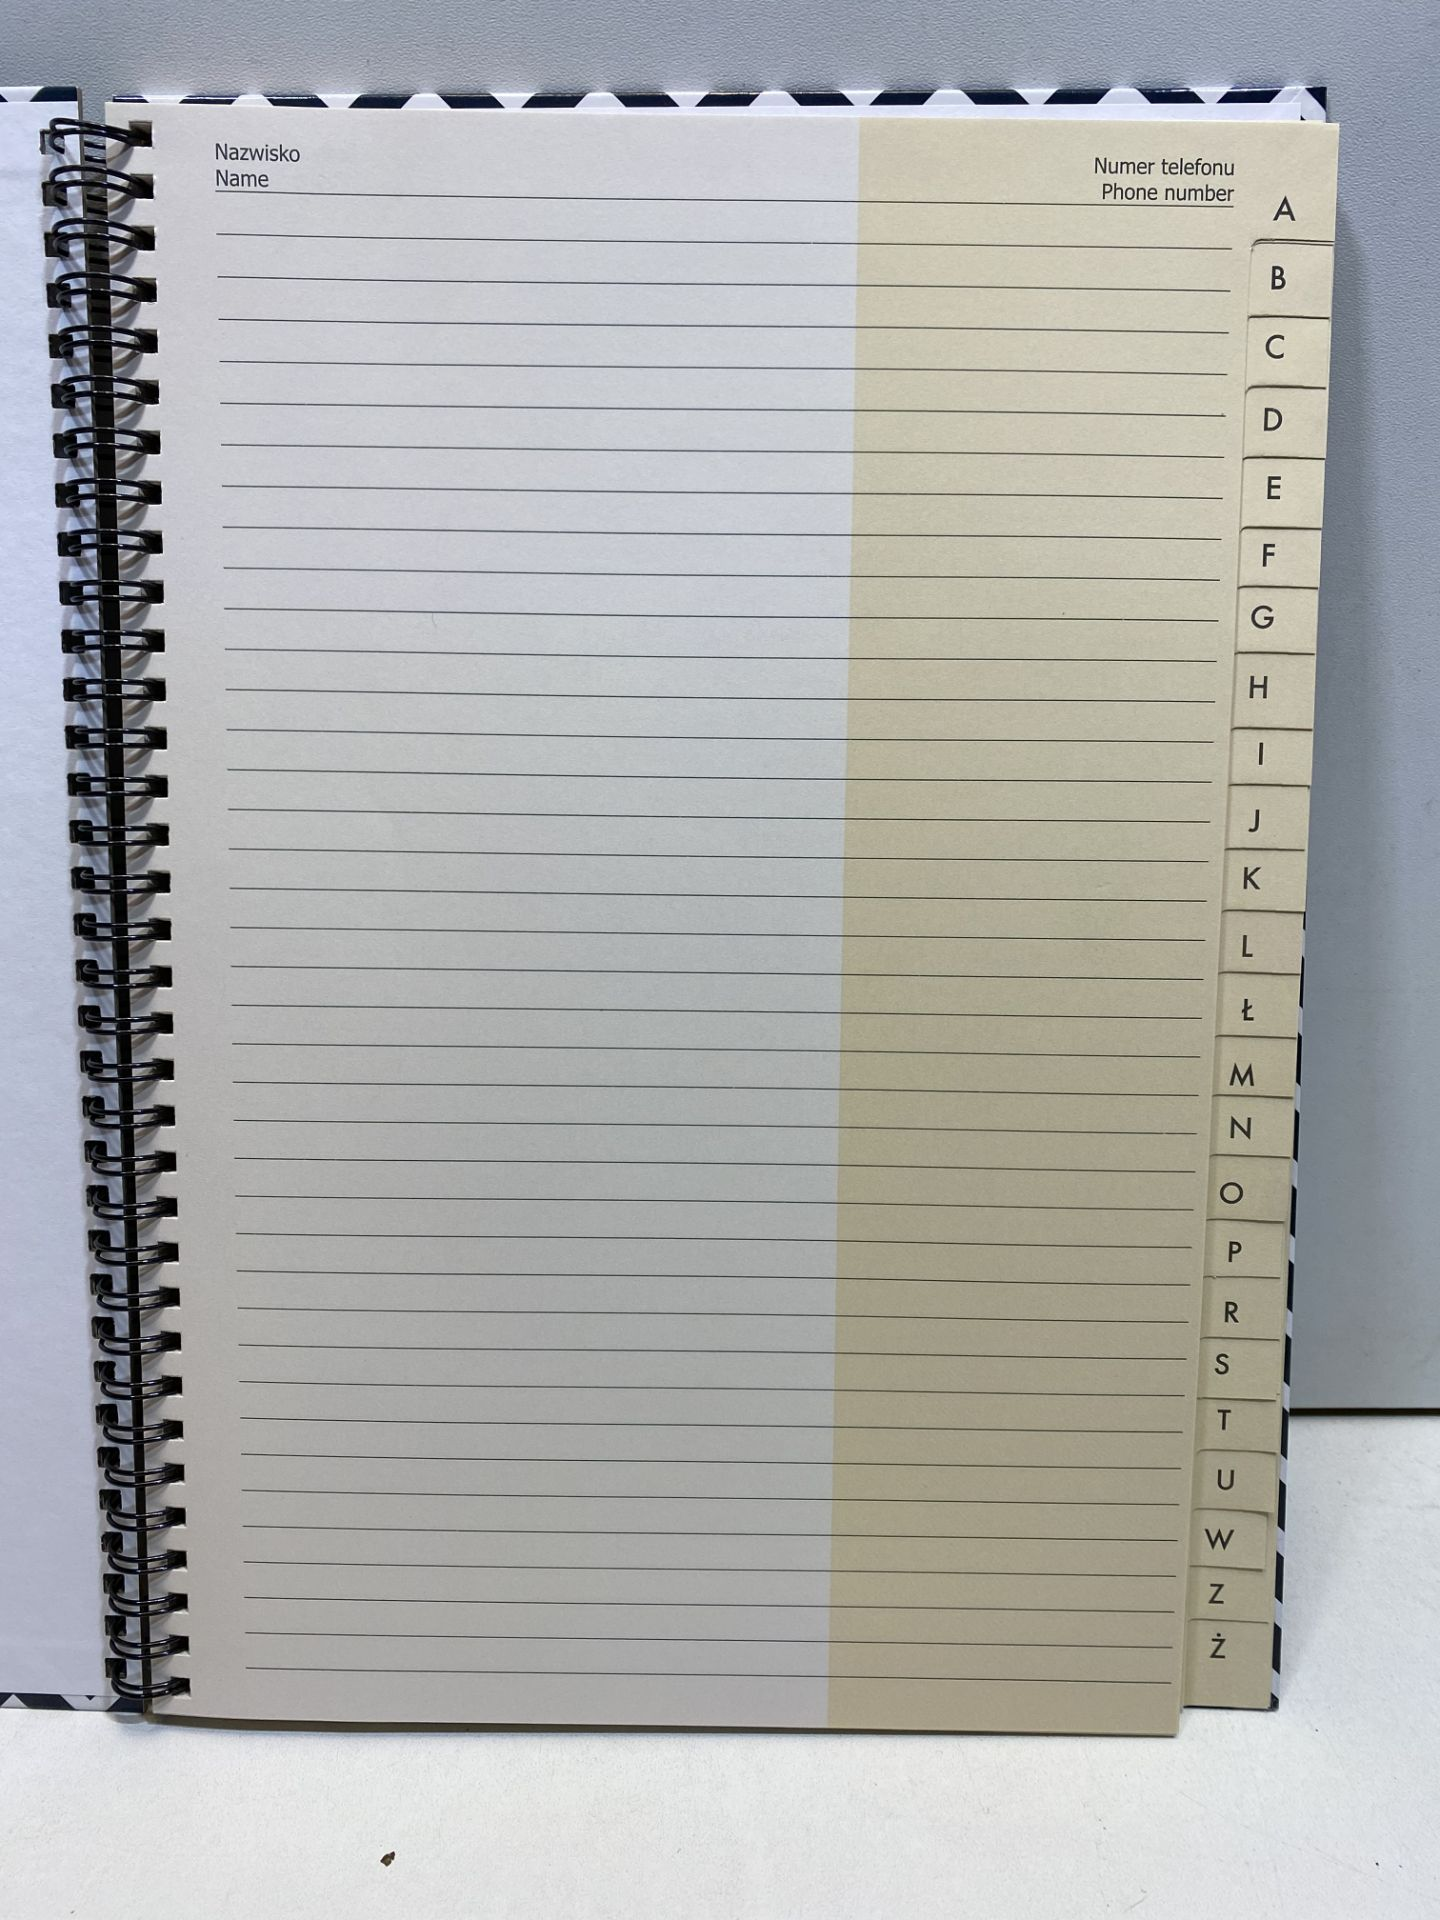 7 x Various A4 Address & Phone A-Z Notepads | 5902277171108 - Image 6 of 7